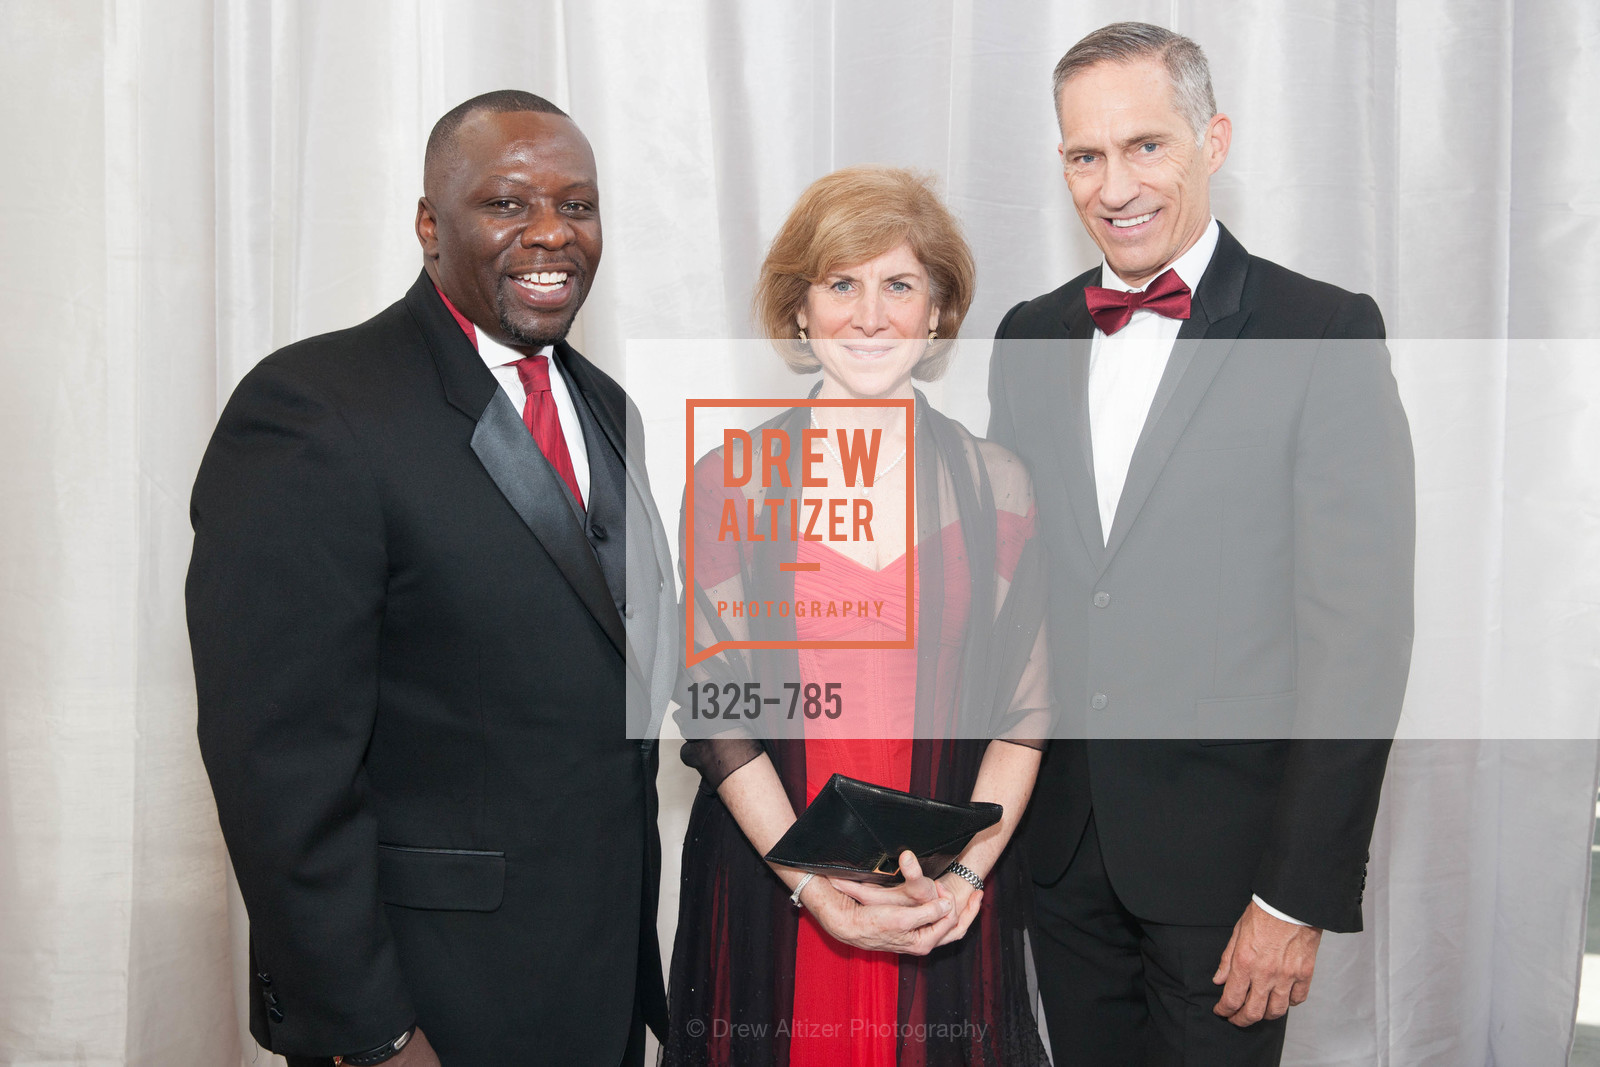 Keith White, Gail McGovern, Mark Cloutier, 2015 RED CROSS Gala, US, April 11th, 2015,Drew Altizer, Drew Altizer Photography, full-service agency, private events, San Francisco photographer, photographer california